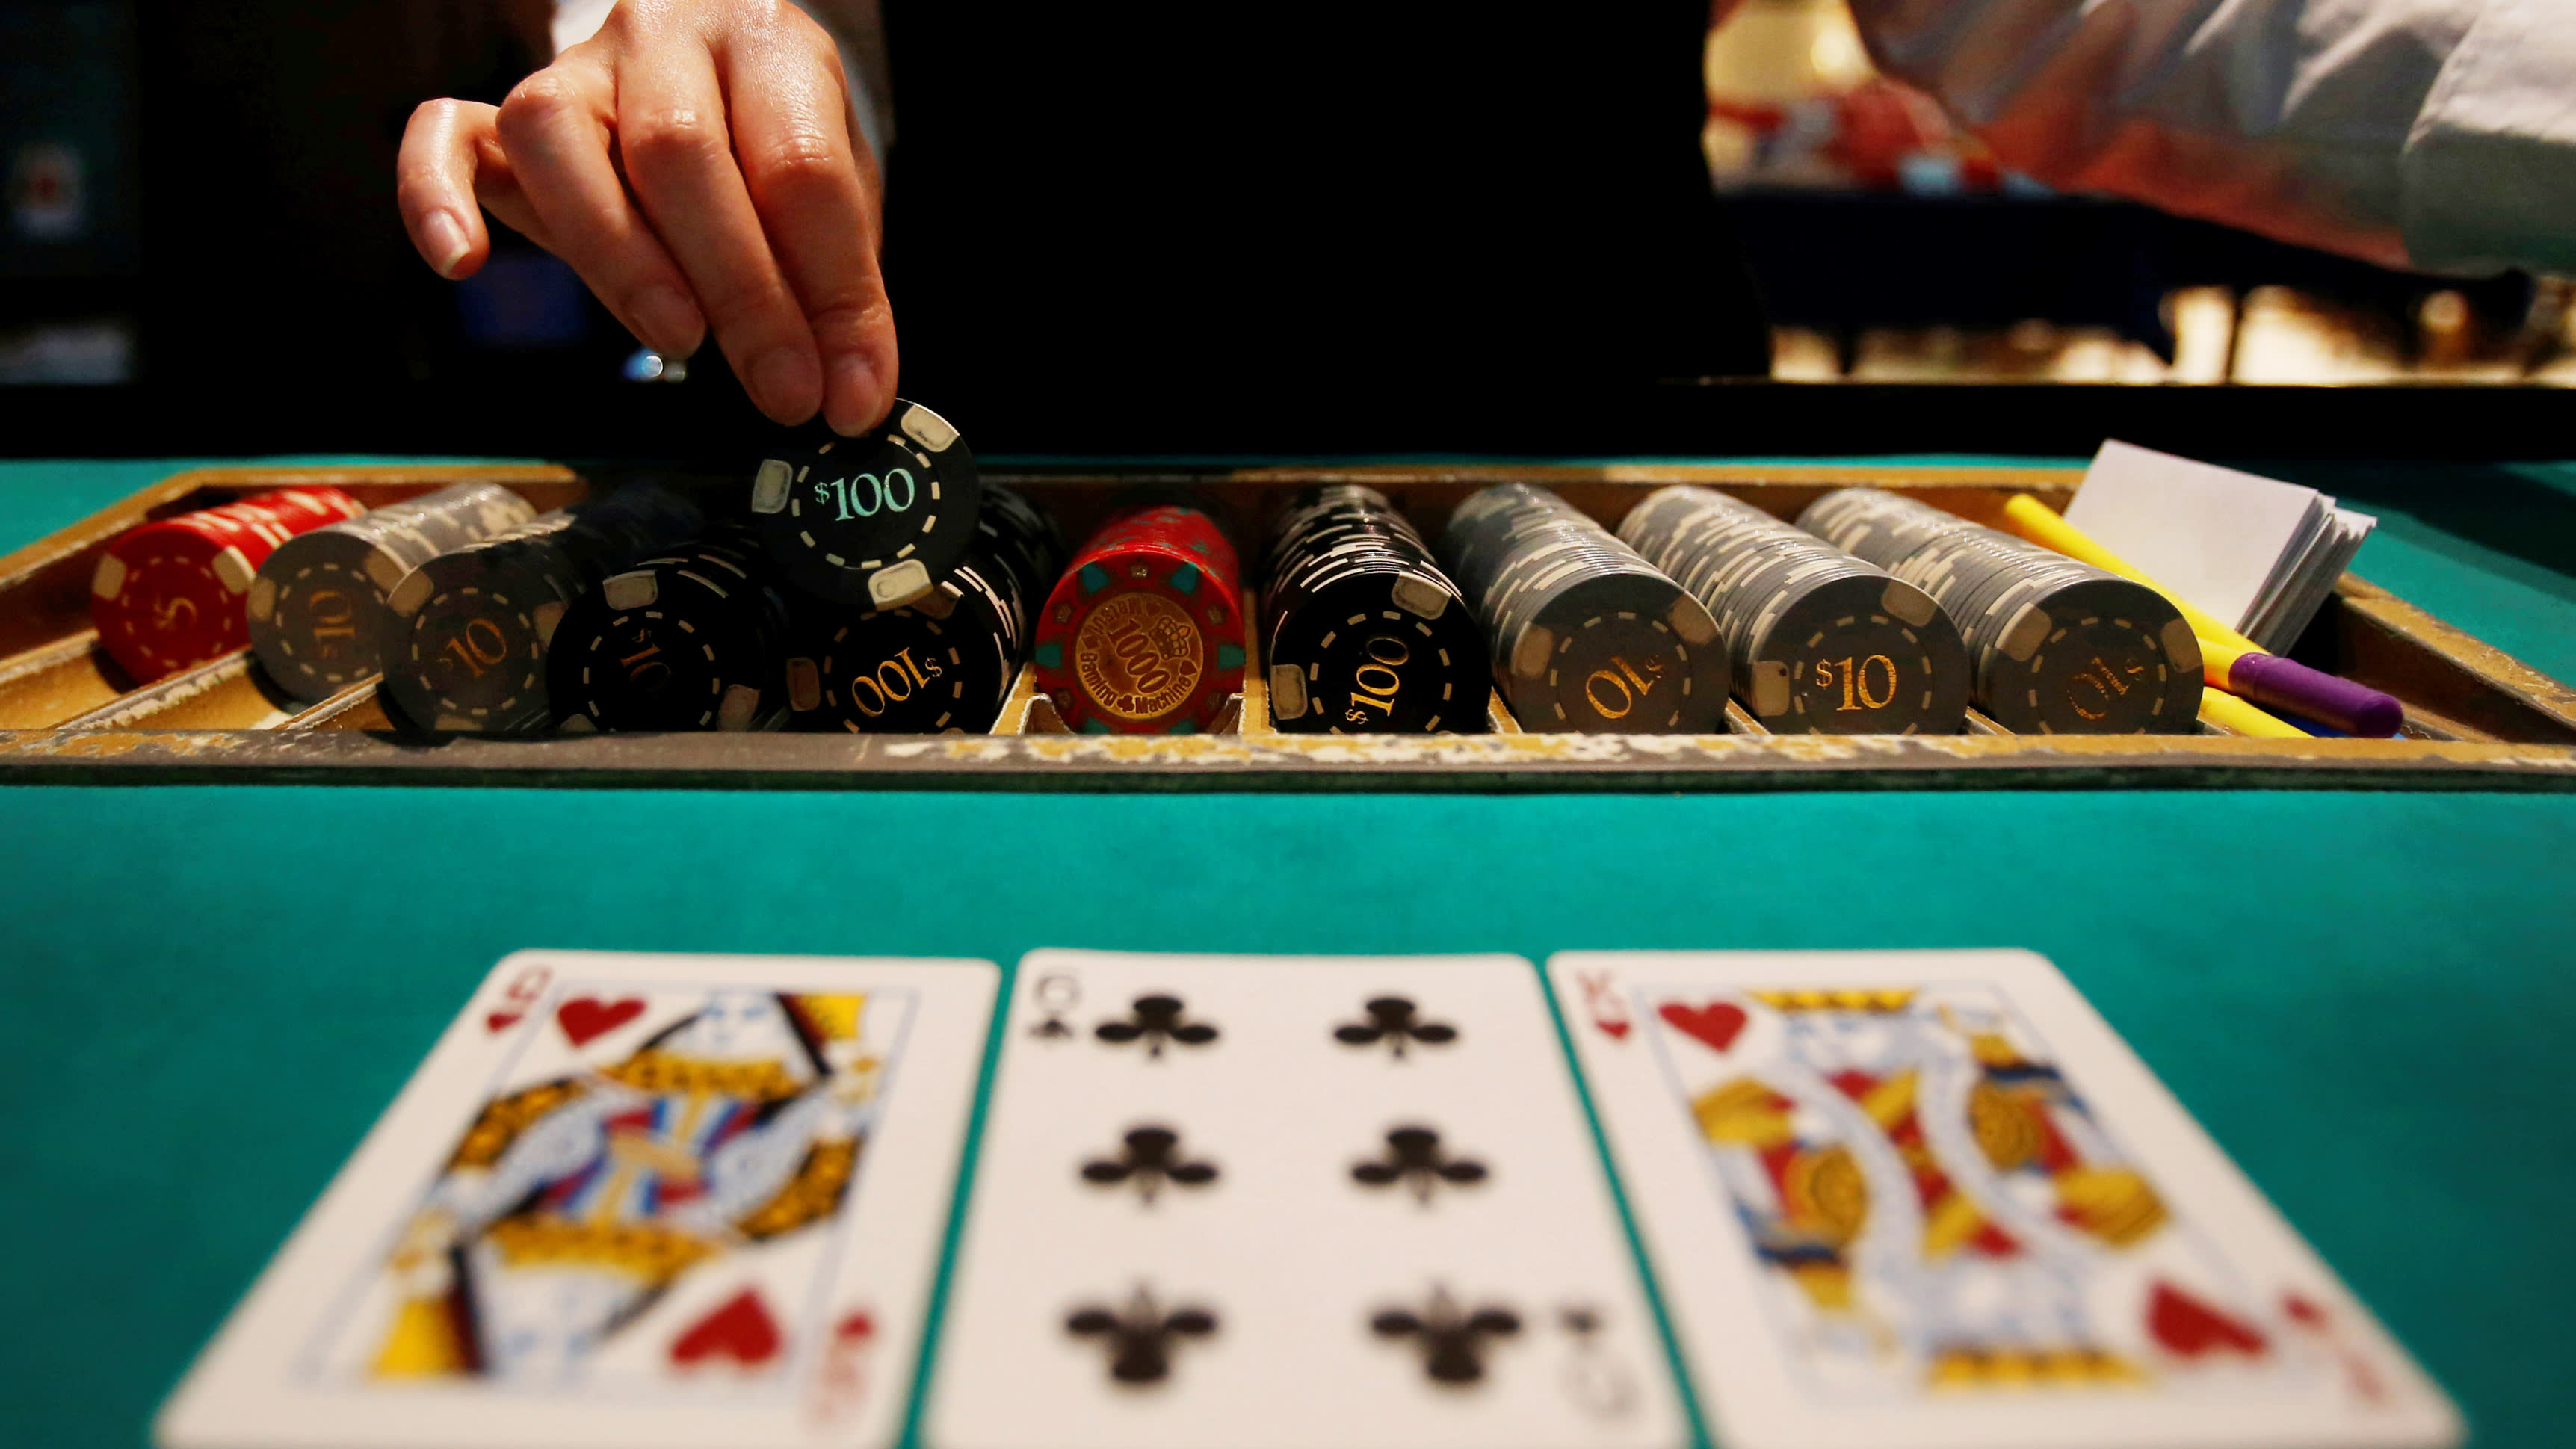 Should On-Line Gambling Be Legalized?